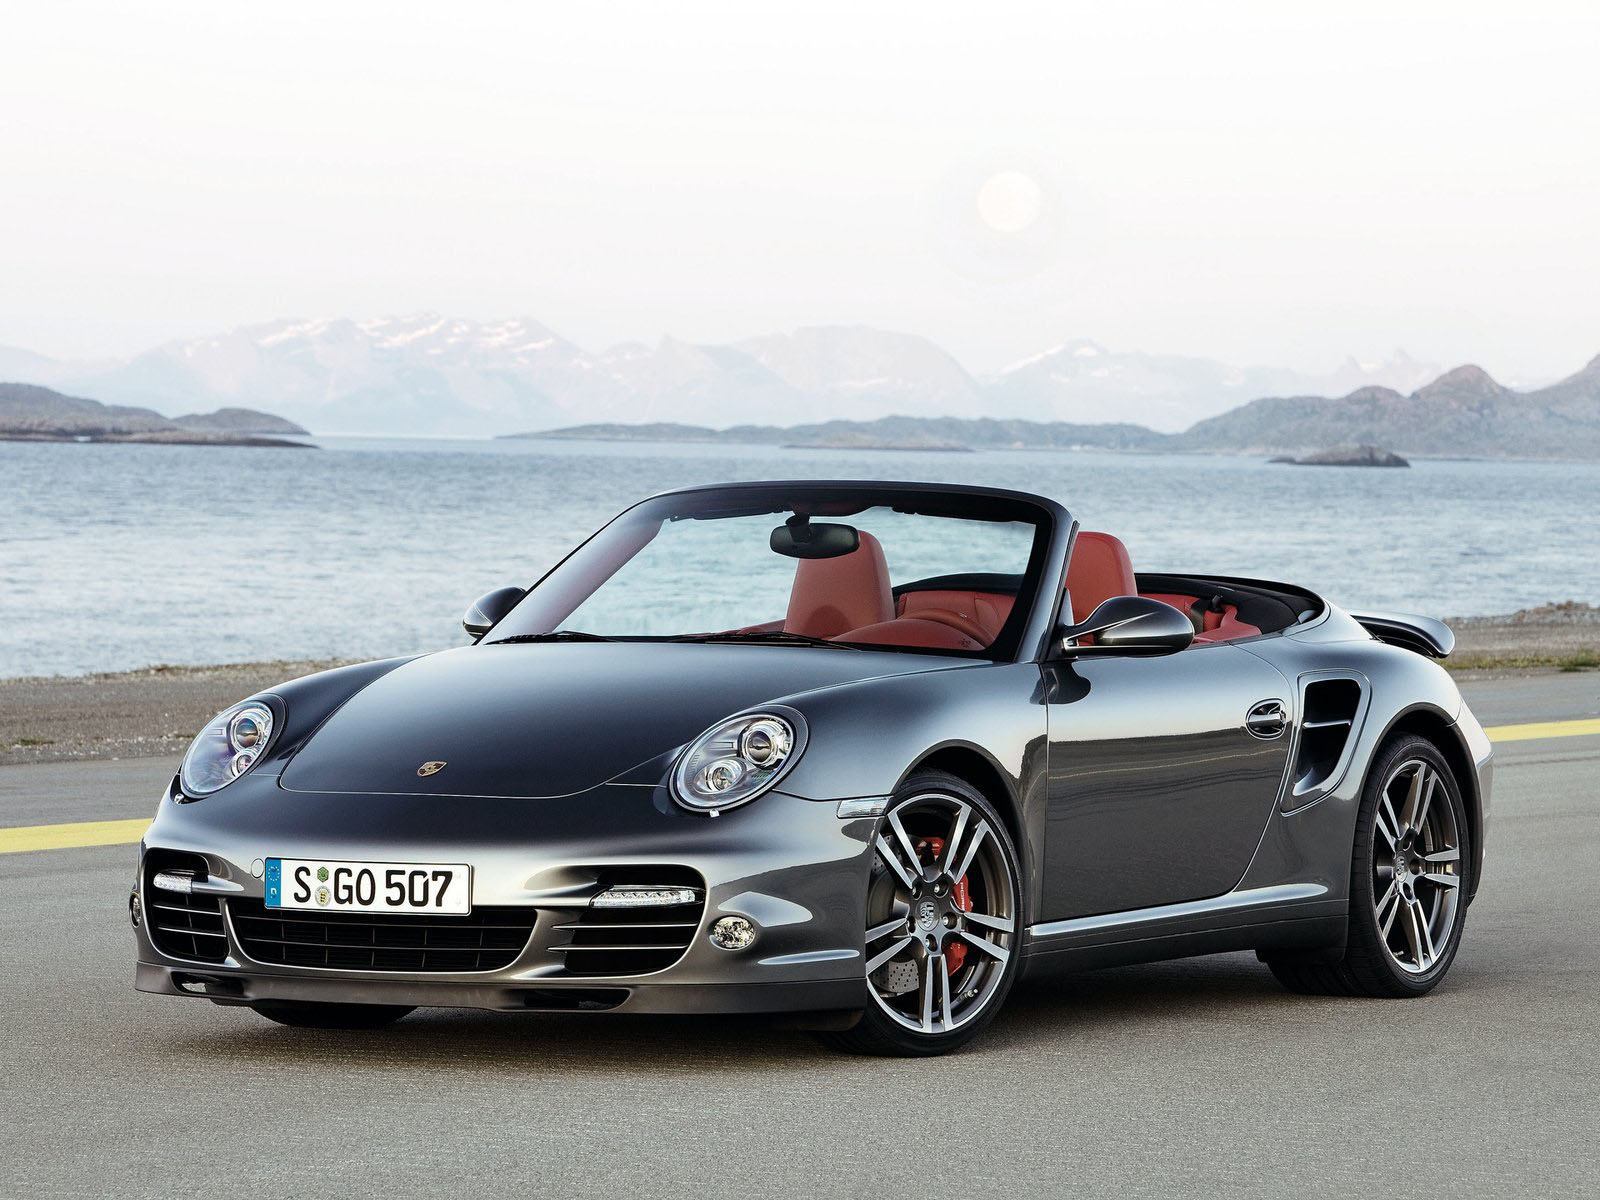 wallpapers porsche 911 turbo car wallpapers. Black Bedroom Furniture Sets. Home Design Ideas